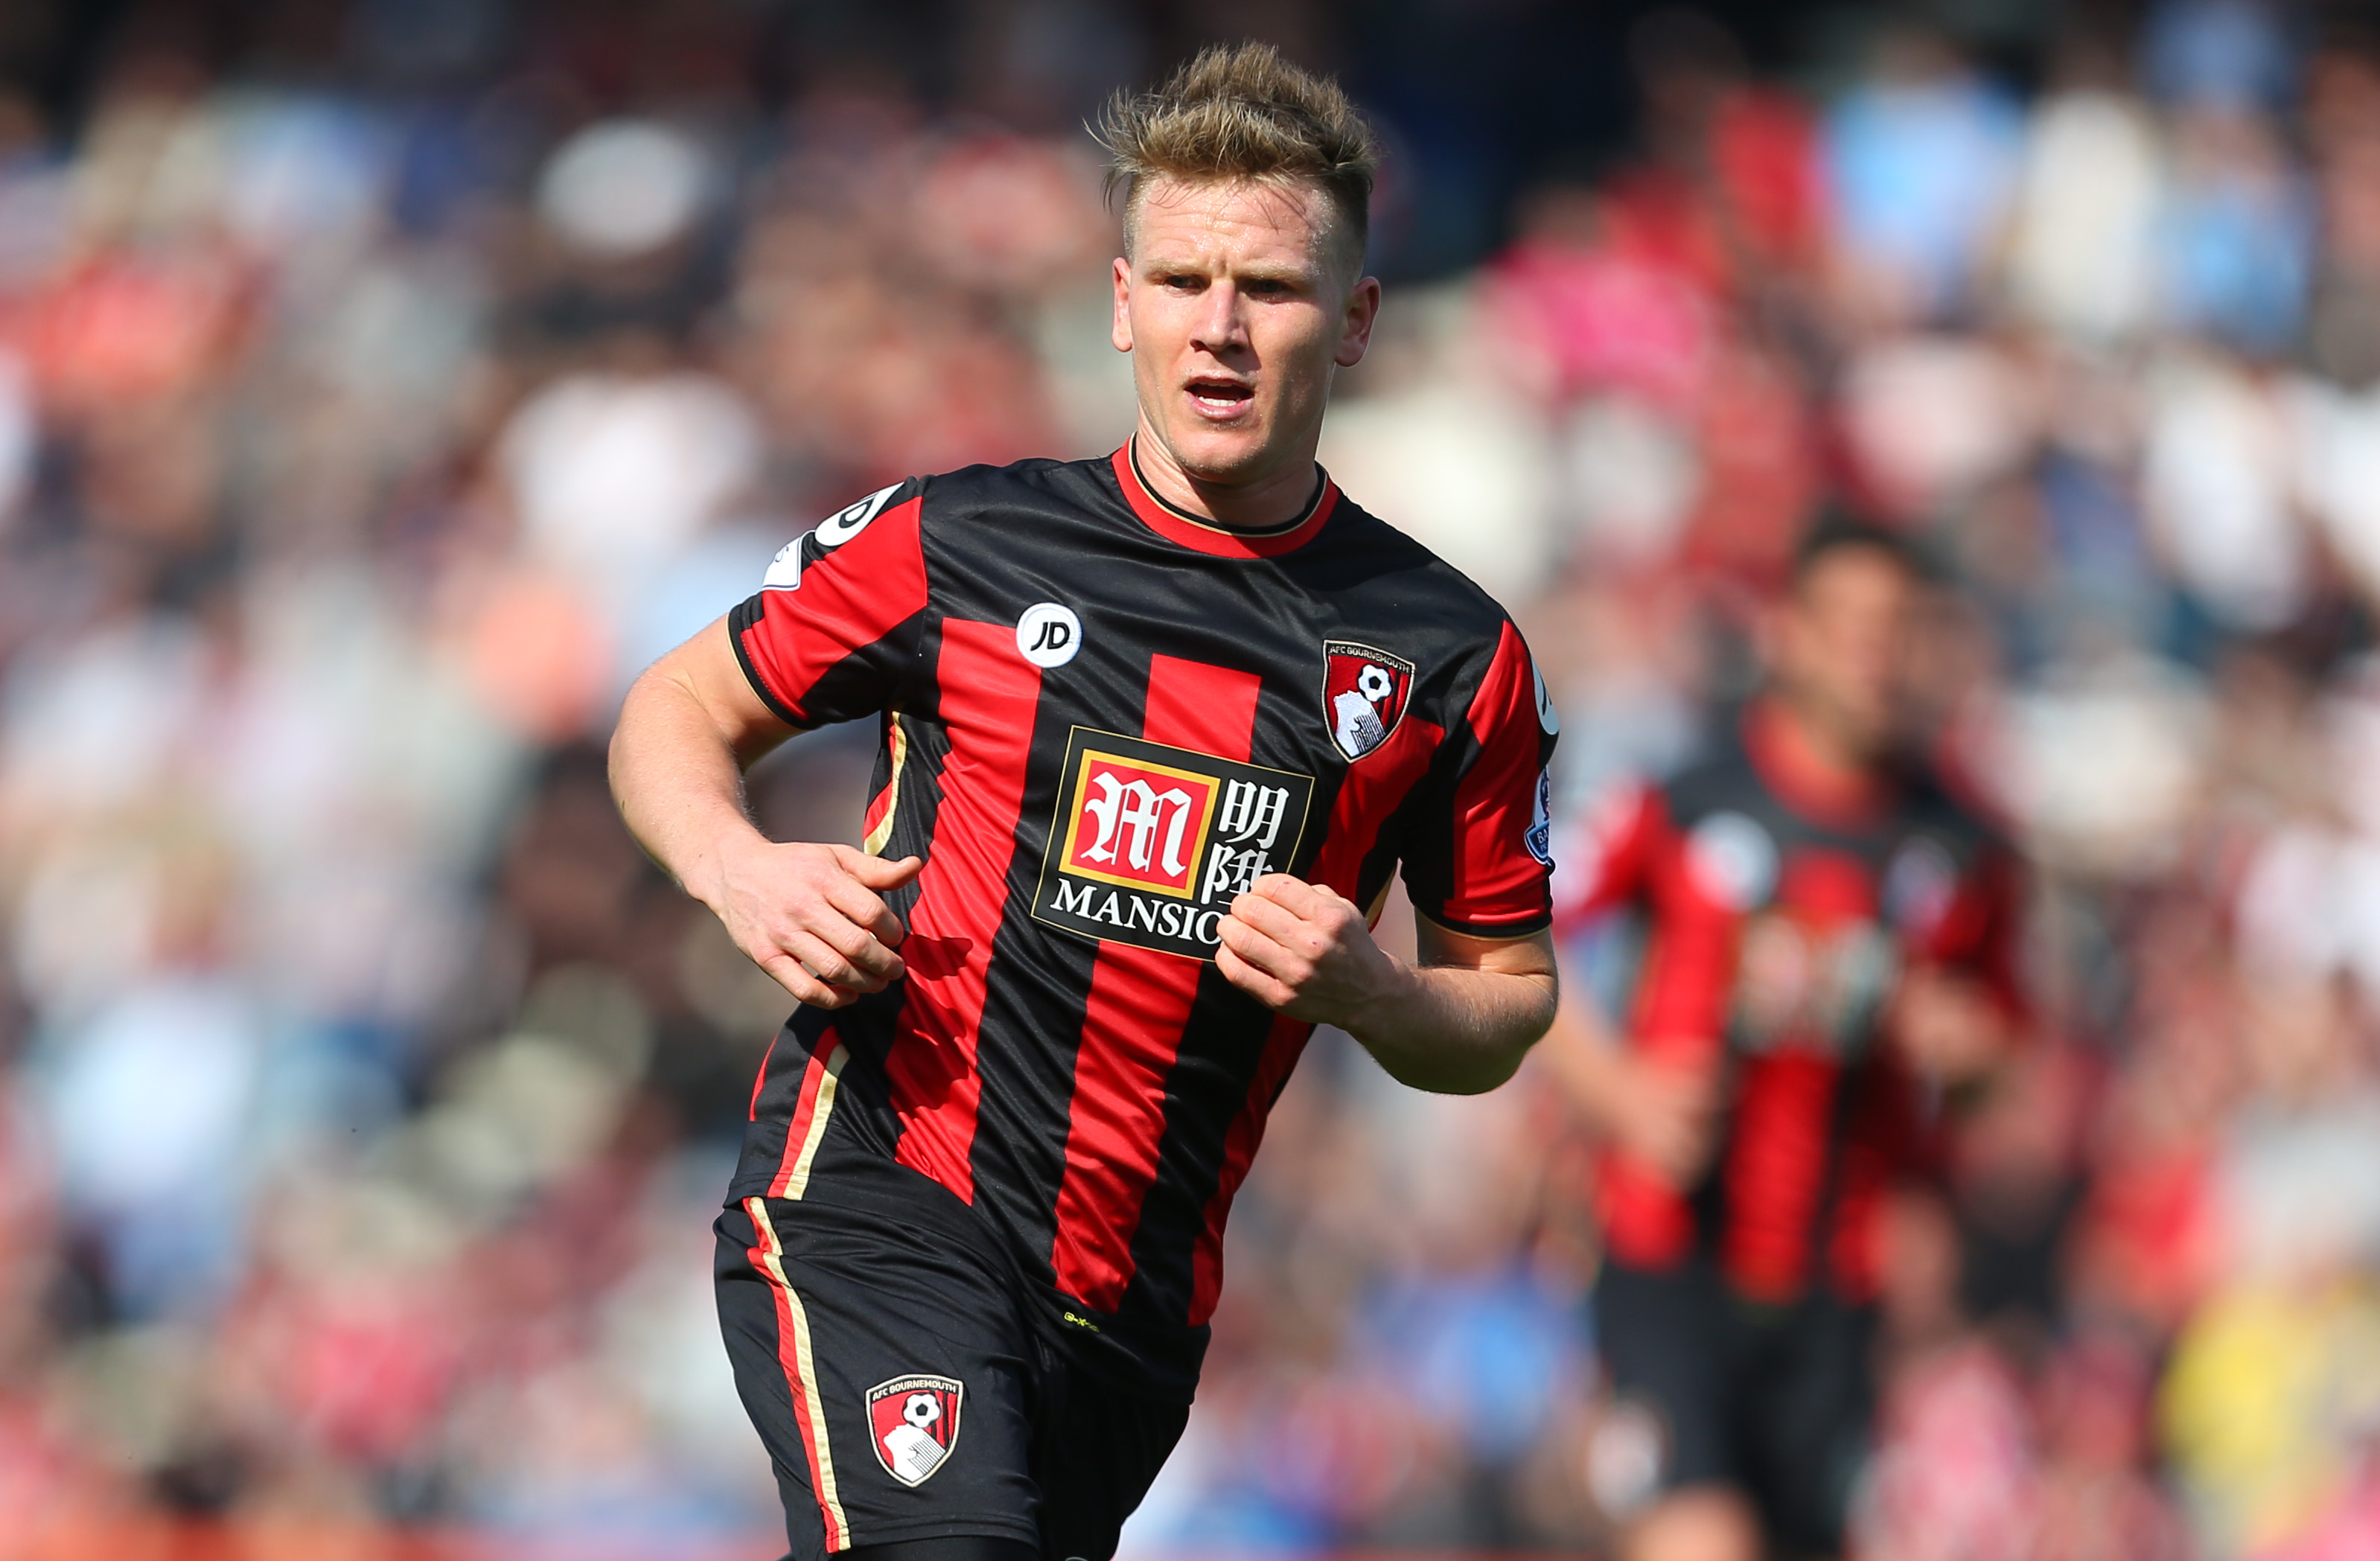 Newcastle United sign Matt Ritchie from Bournemouth in £12m deal